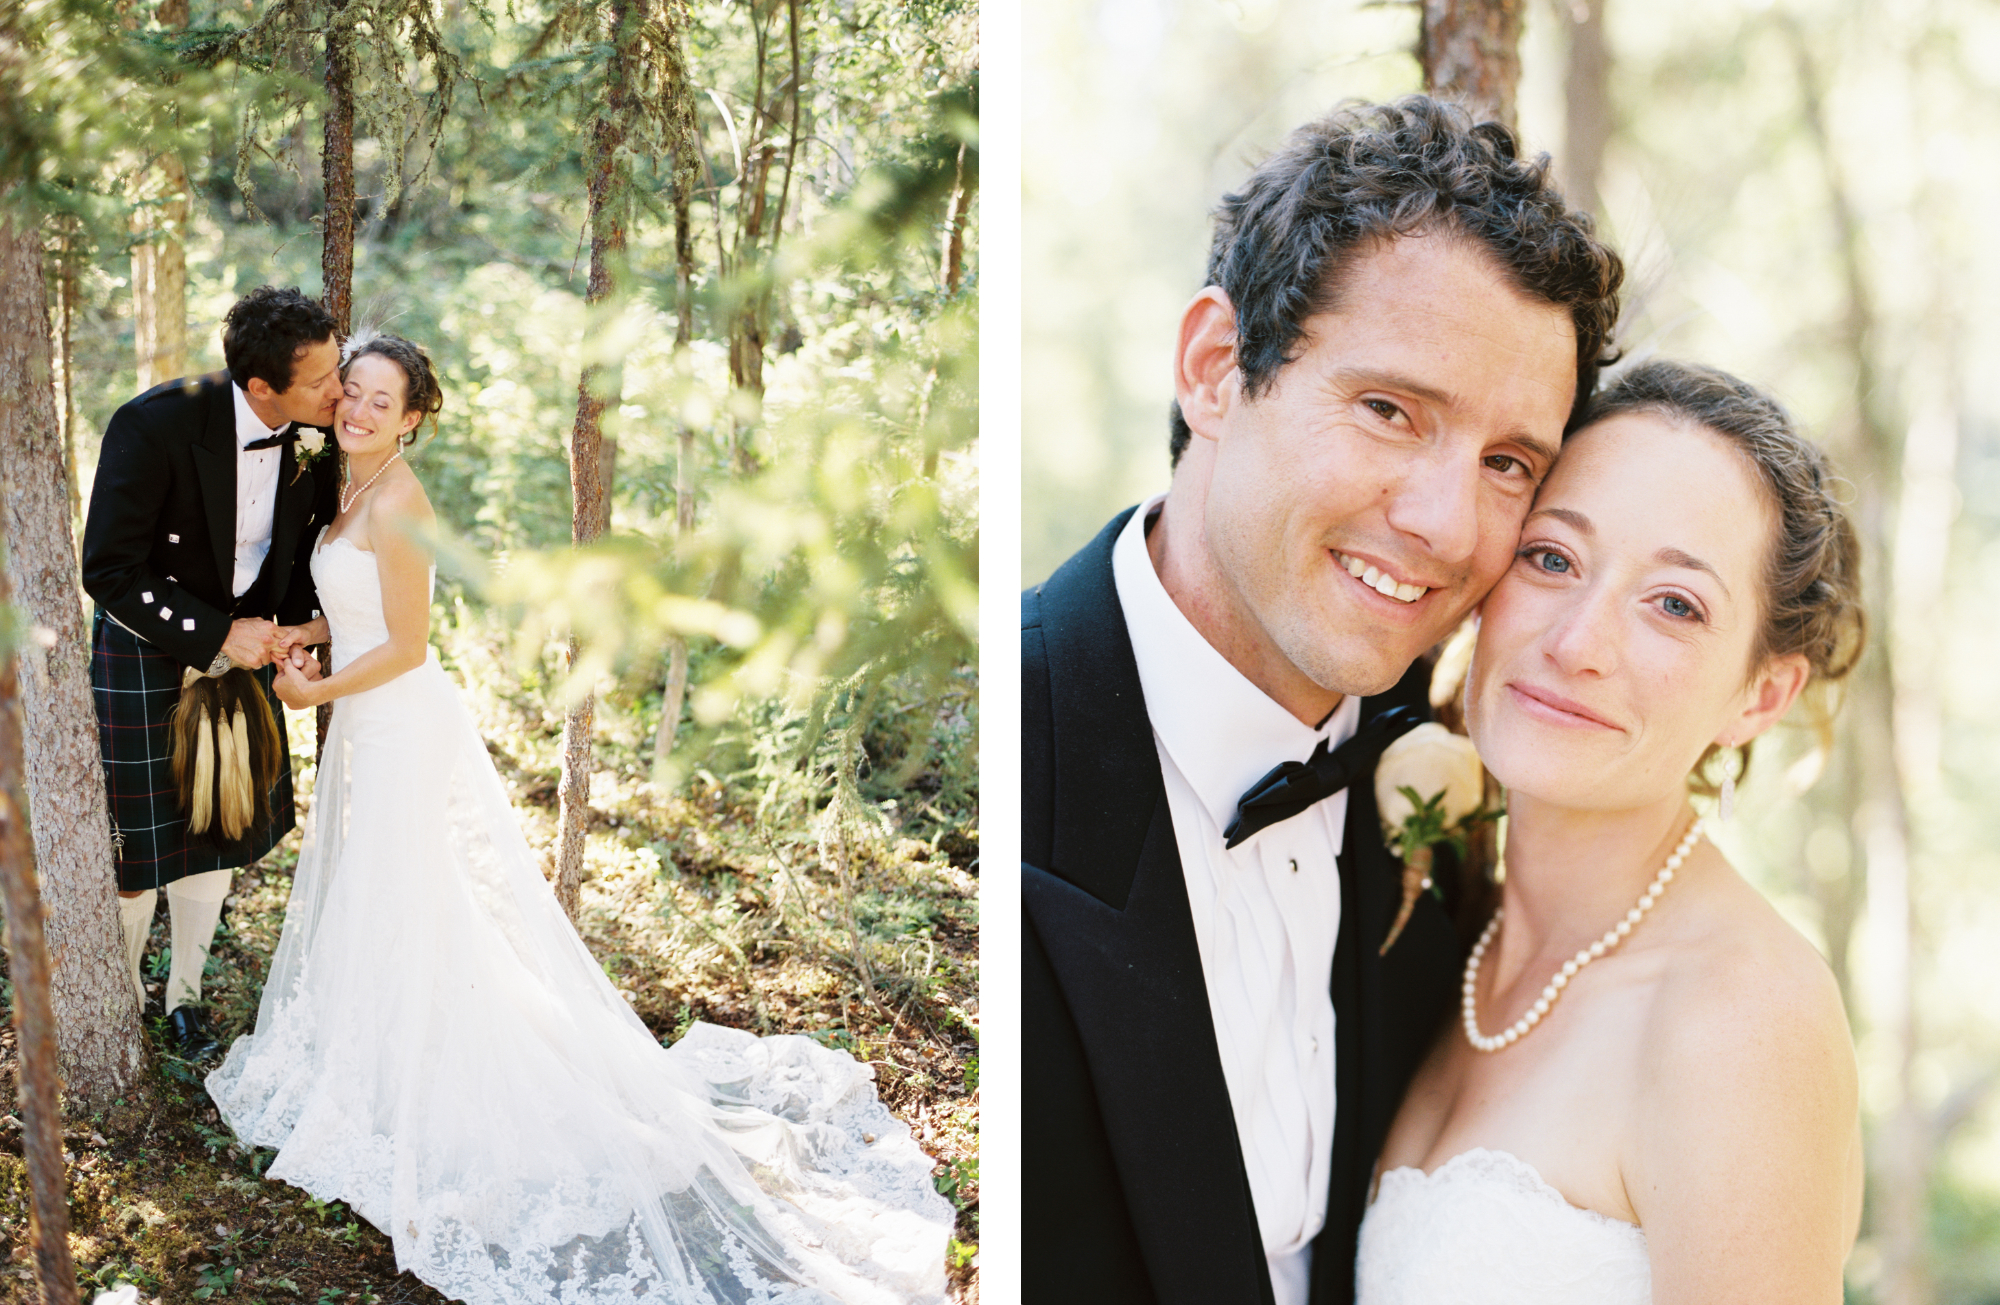 Portrait of bride and groom in forest